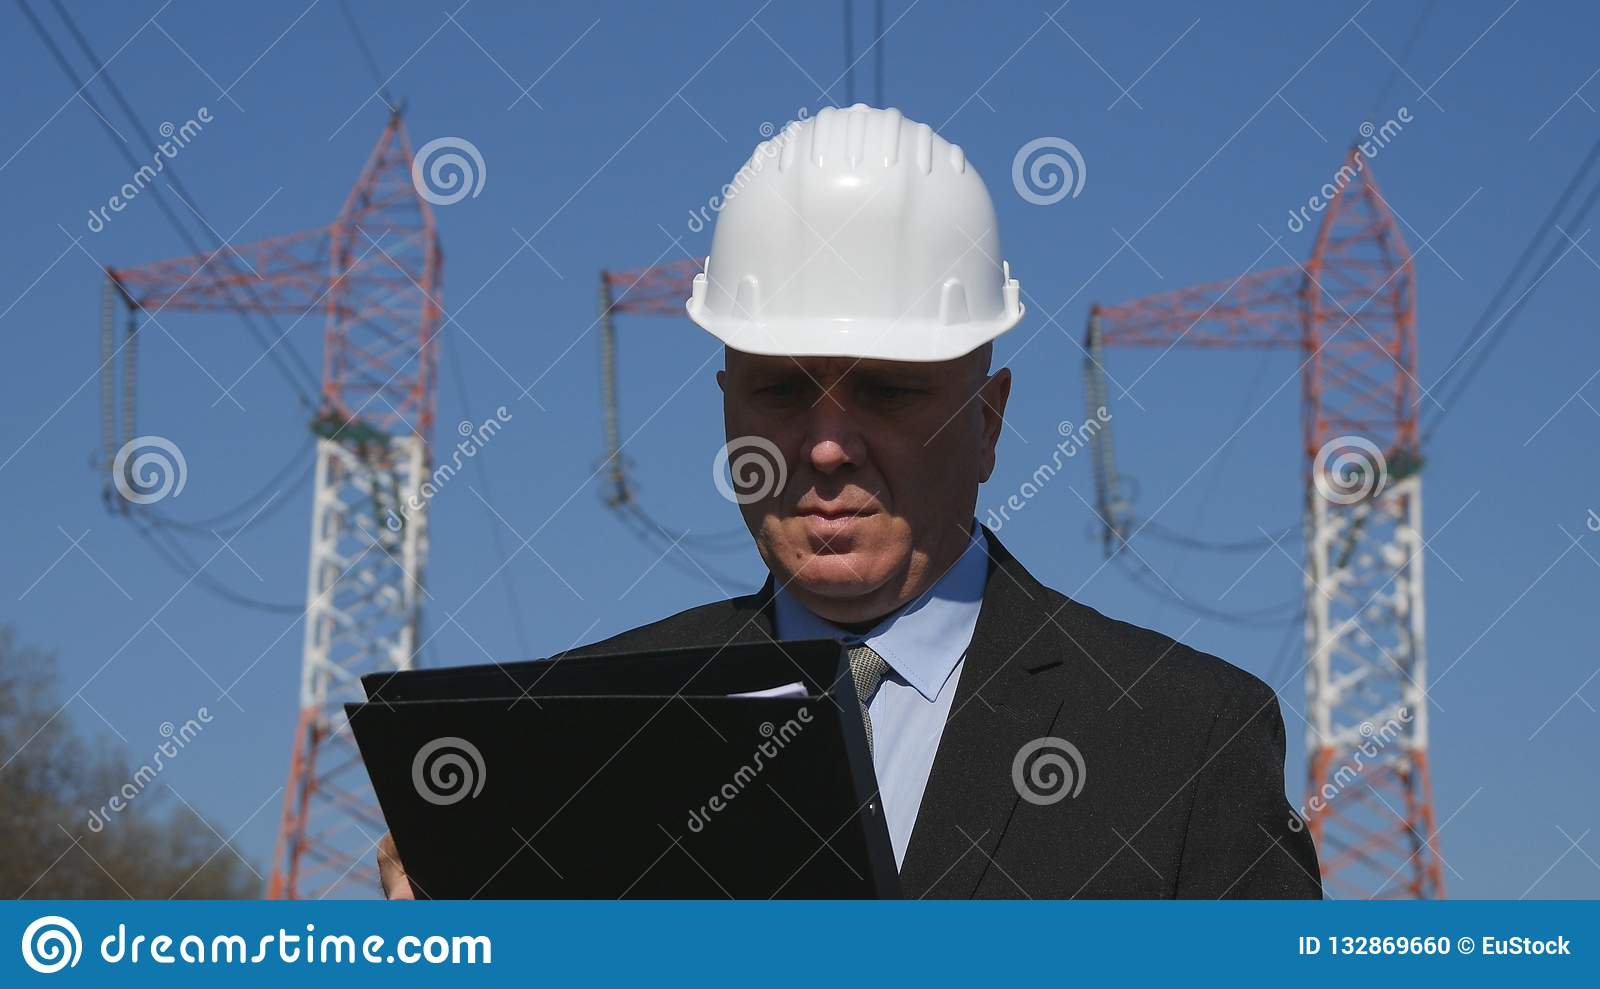 Engineer Working in Energy Industry Check Maintenance File